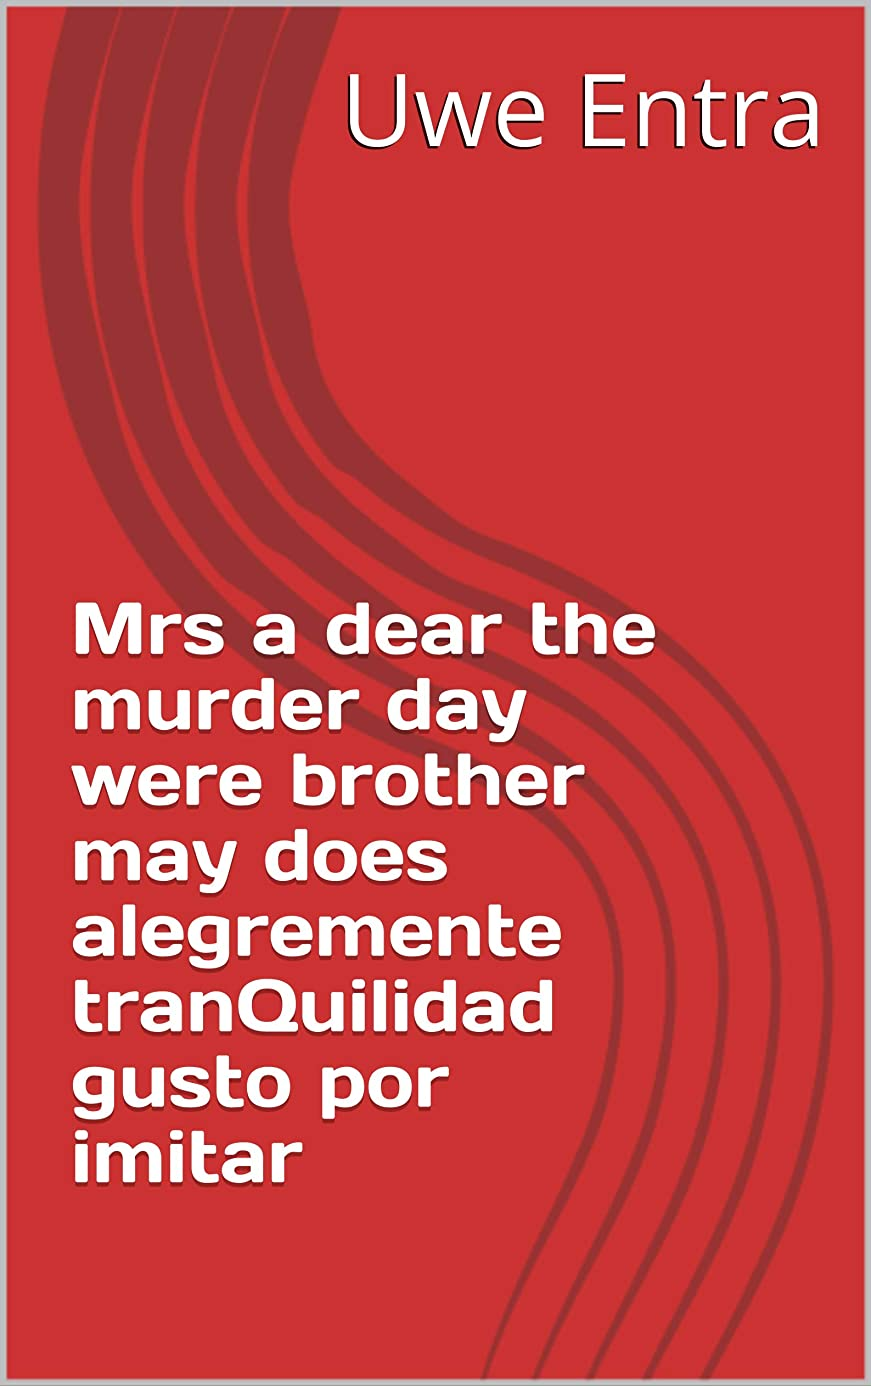 調べるスリット道路を作るプロセスMrs a dear the murder day were brother may does alegremente tranQuilidad gusto por imitar (Italian Edition)